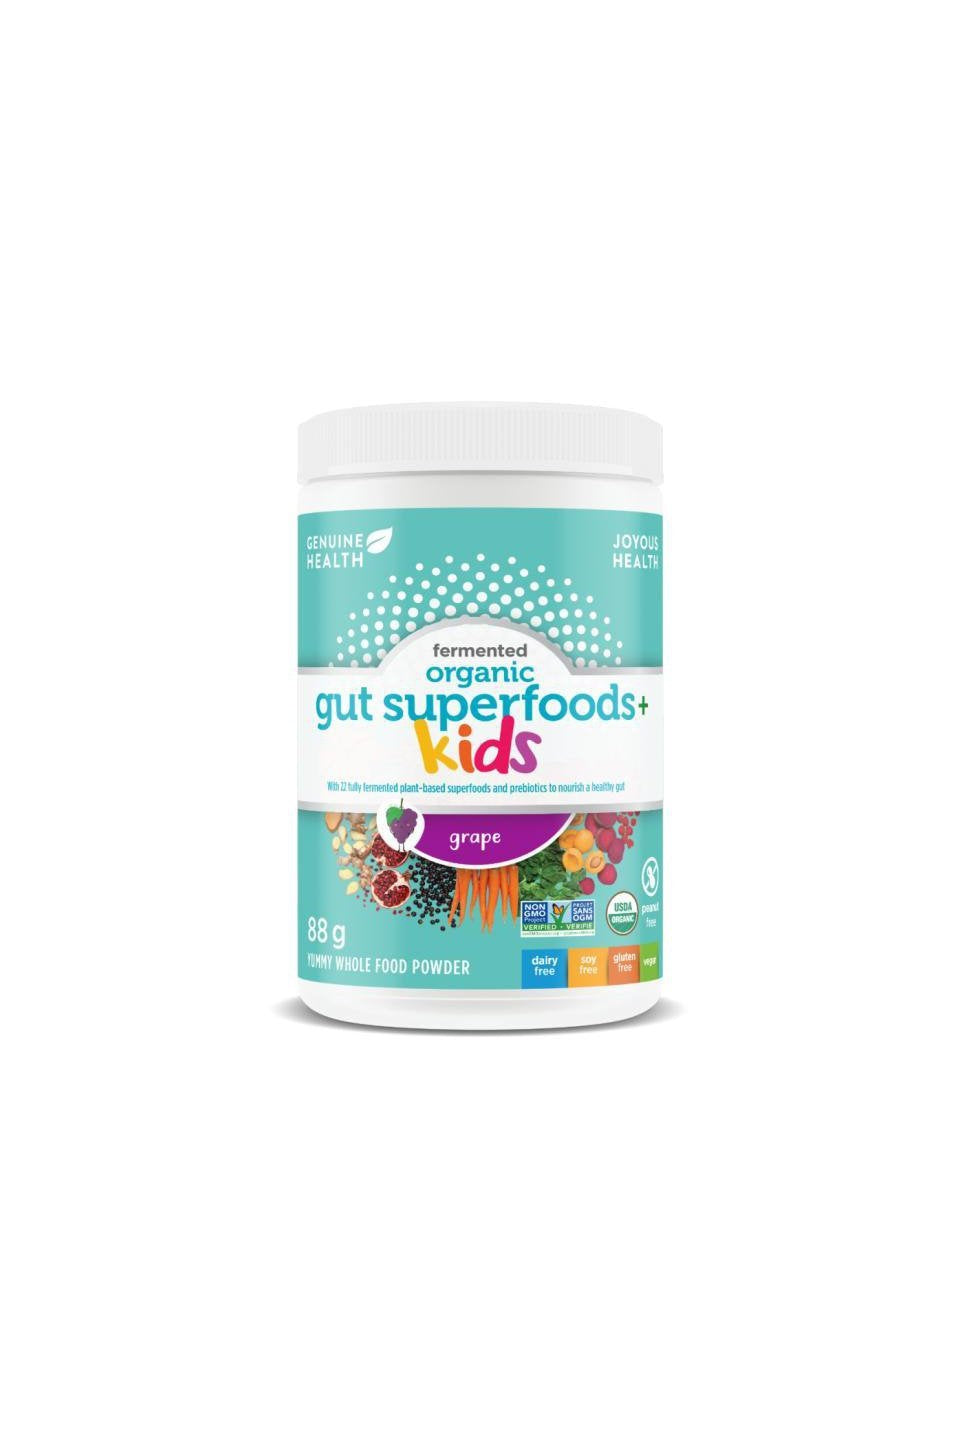 Genuine Health Fermented Organic Gut Superfoods+ Kids - Grape Flavour 88g